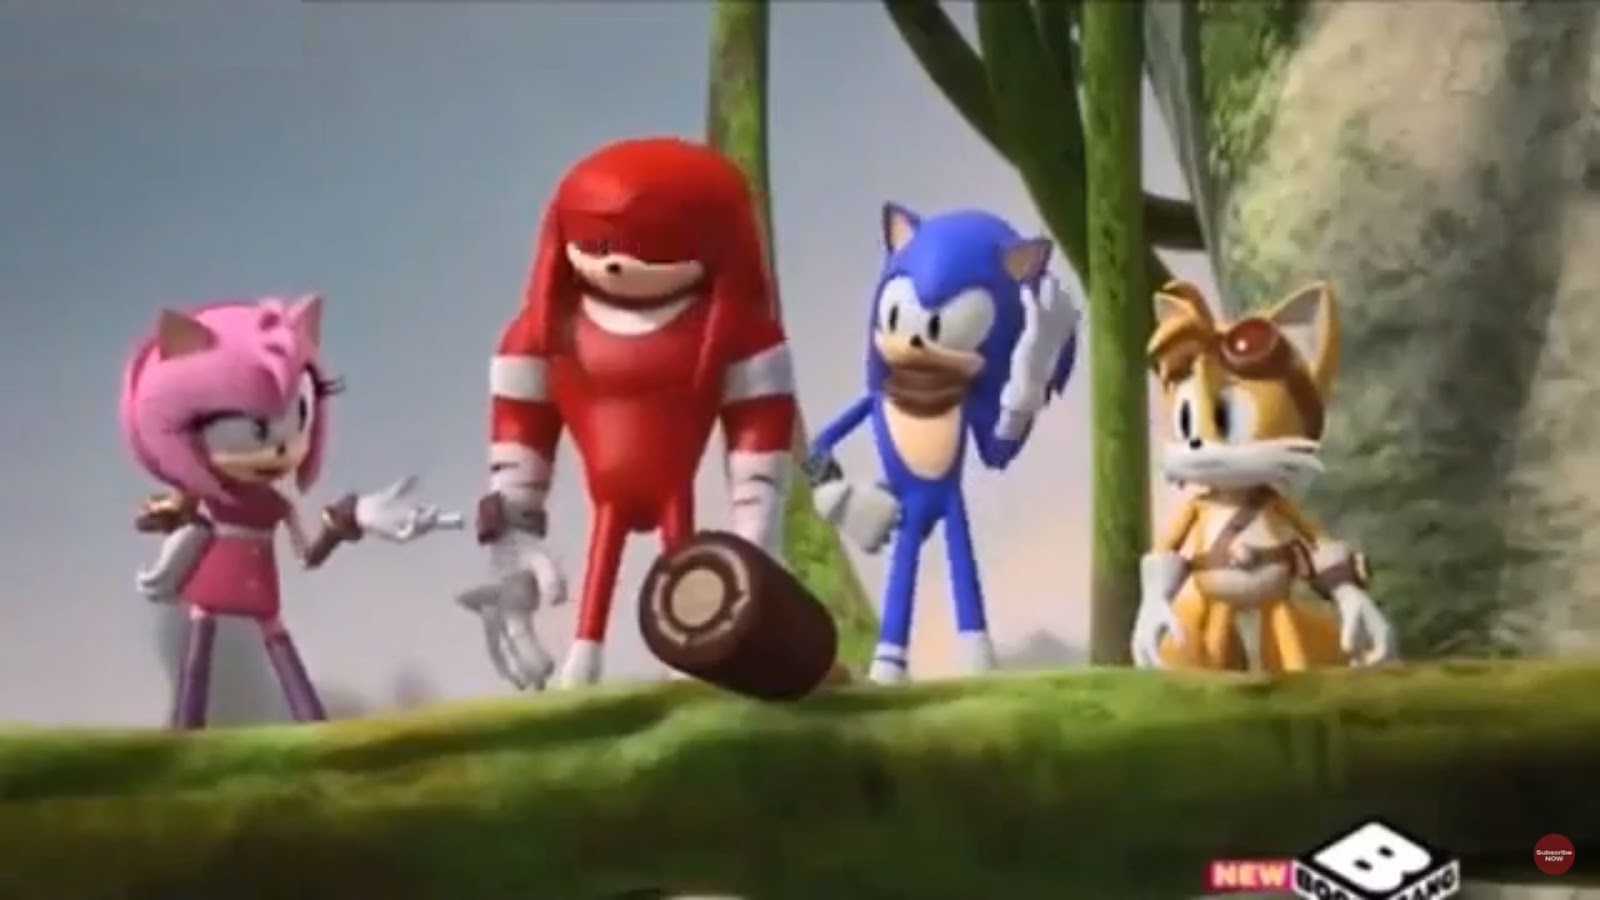 Planned All Along: Top 12 Fourth Wall Breaks in Sonic Boom